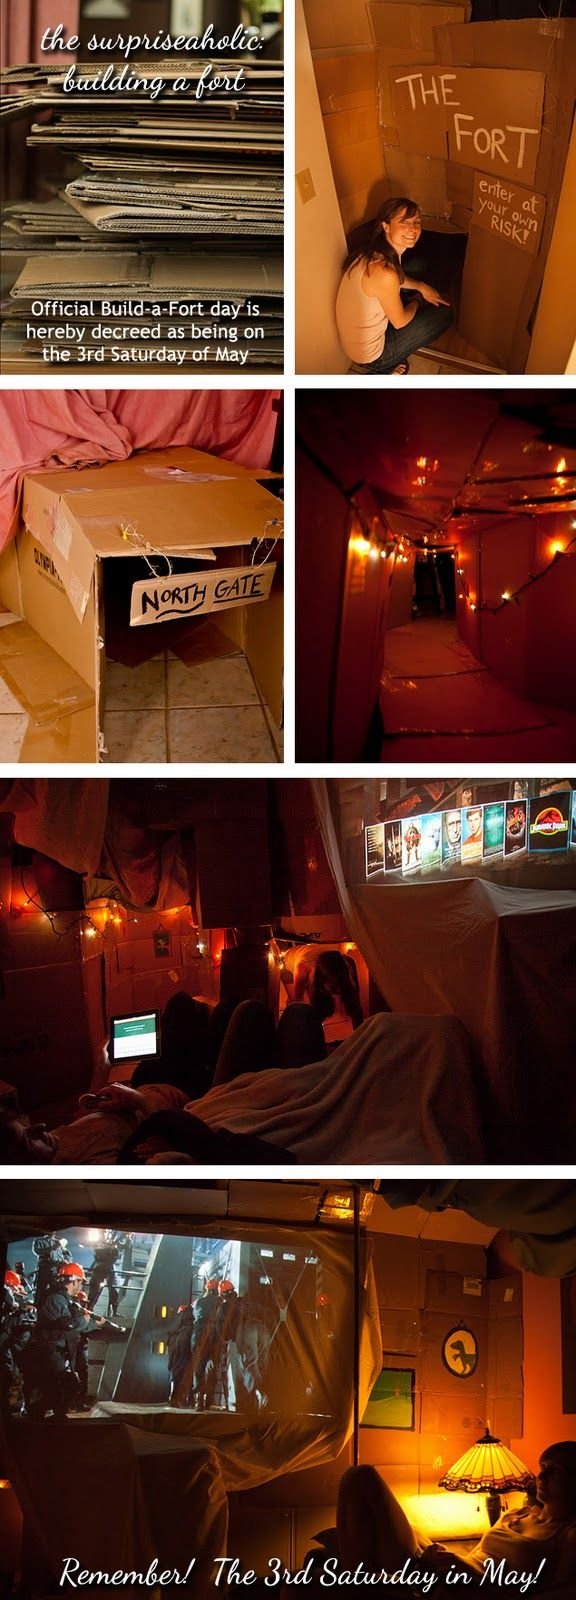 Building an adult-sized cardboard fort!      Be sure to build yours the 3rd Saturday in May!